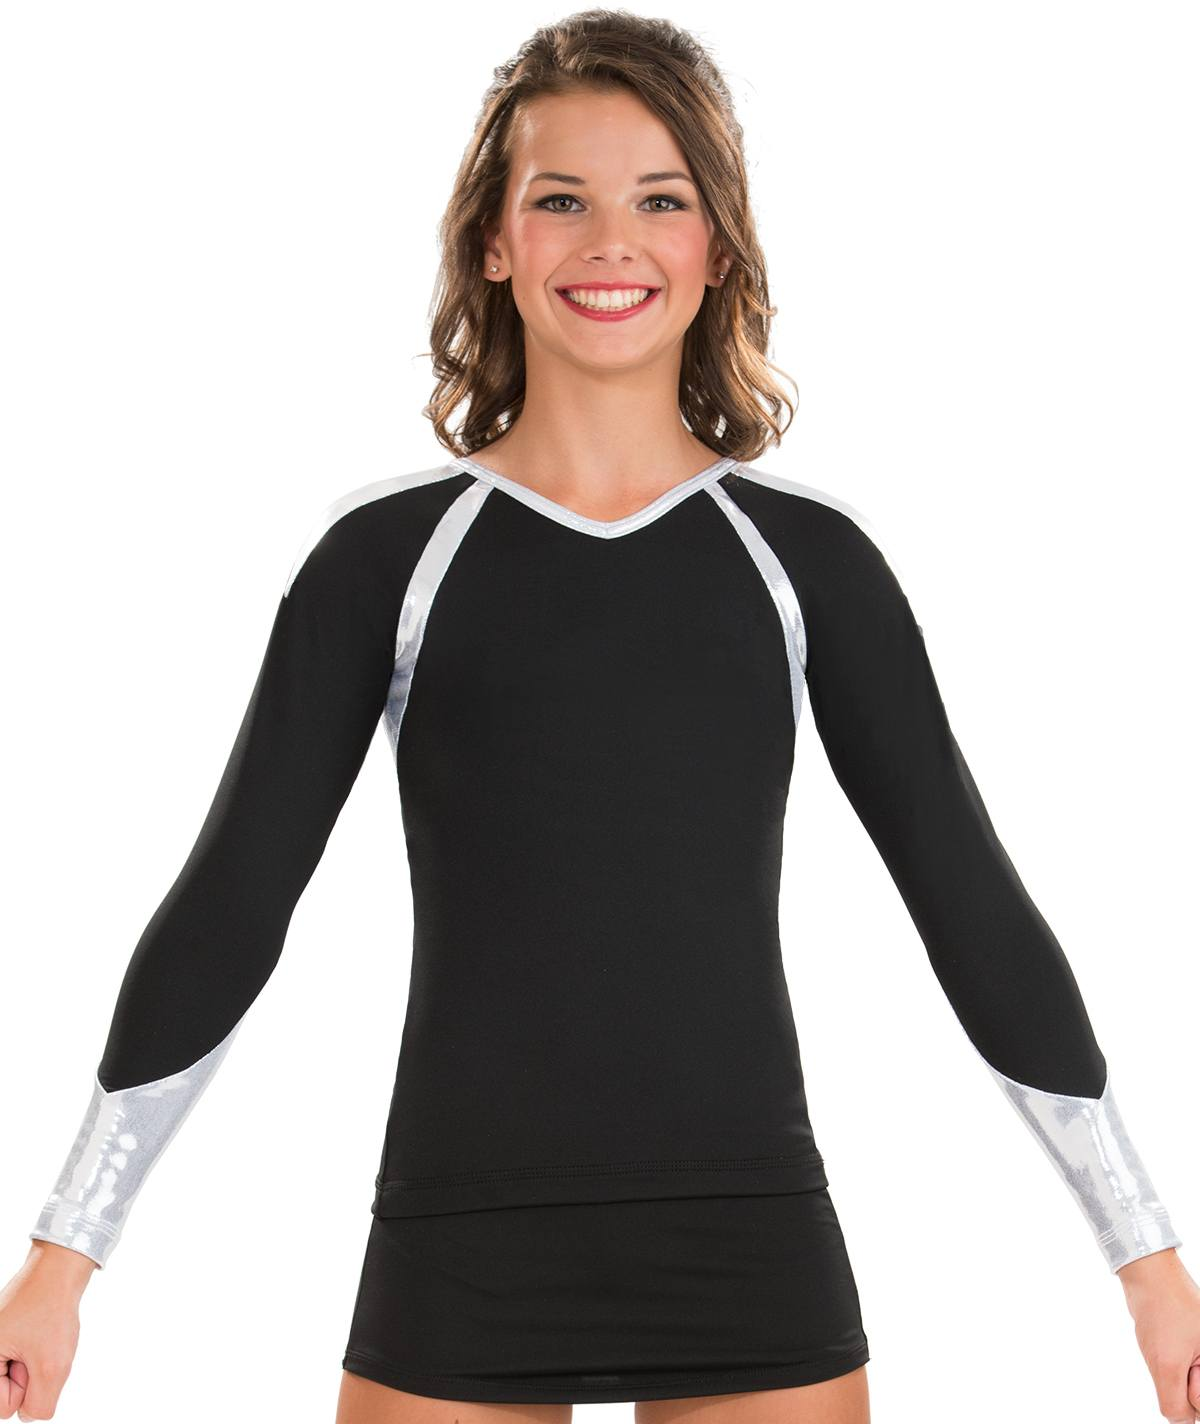 GK All Star Faux Racerback Uniform Top